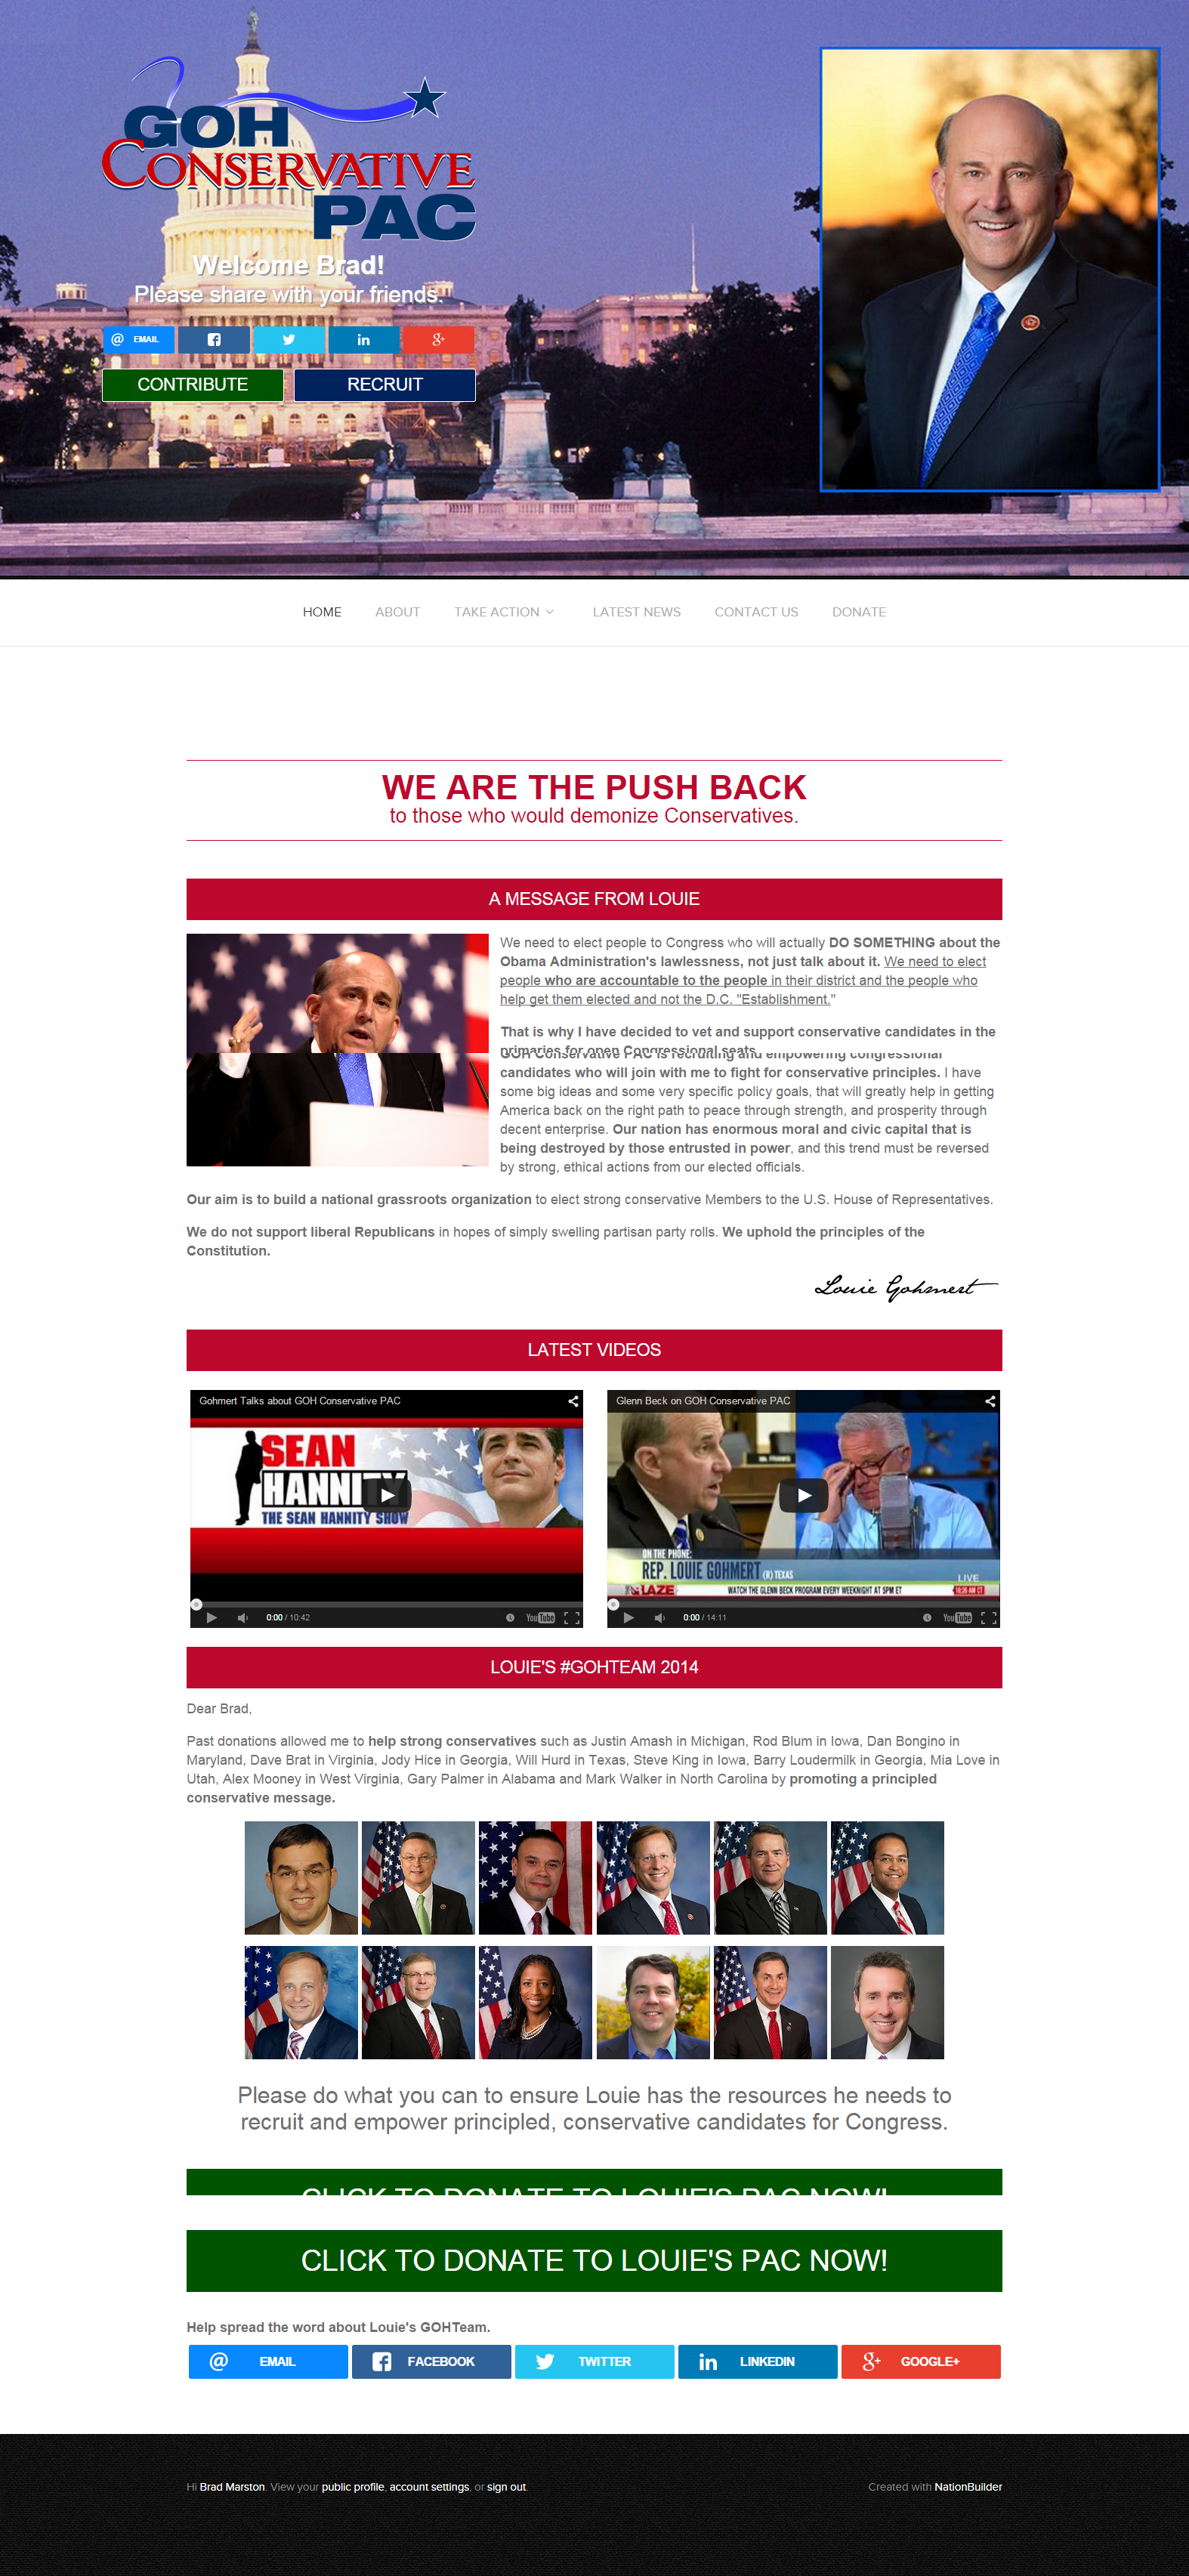 screencapture-new-gohconservativepac-nationbuilder-com-1429405895441.png